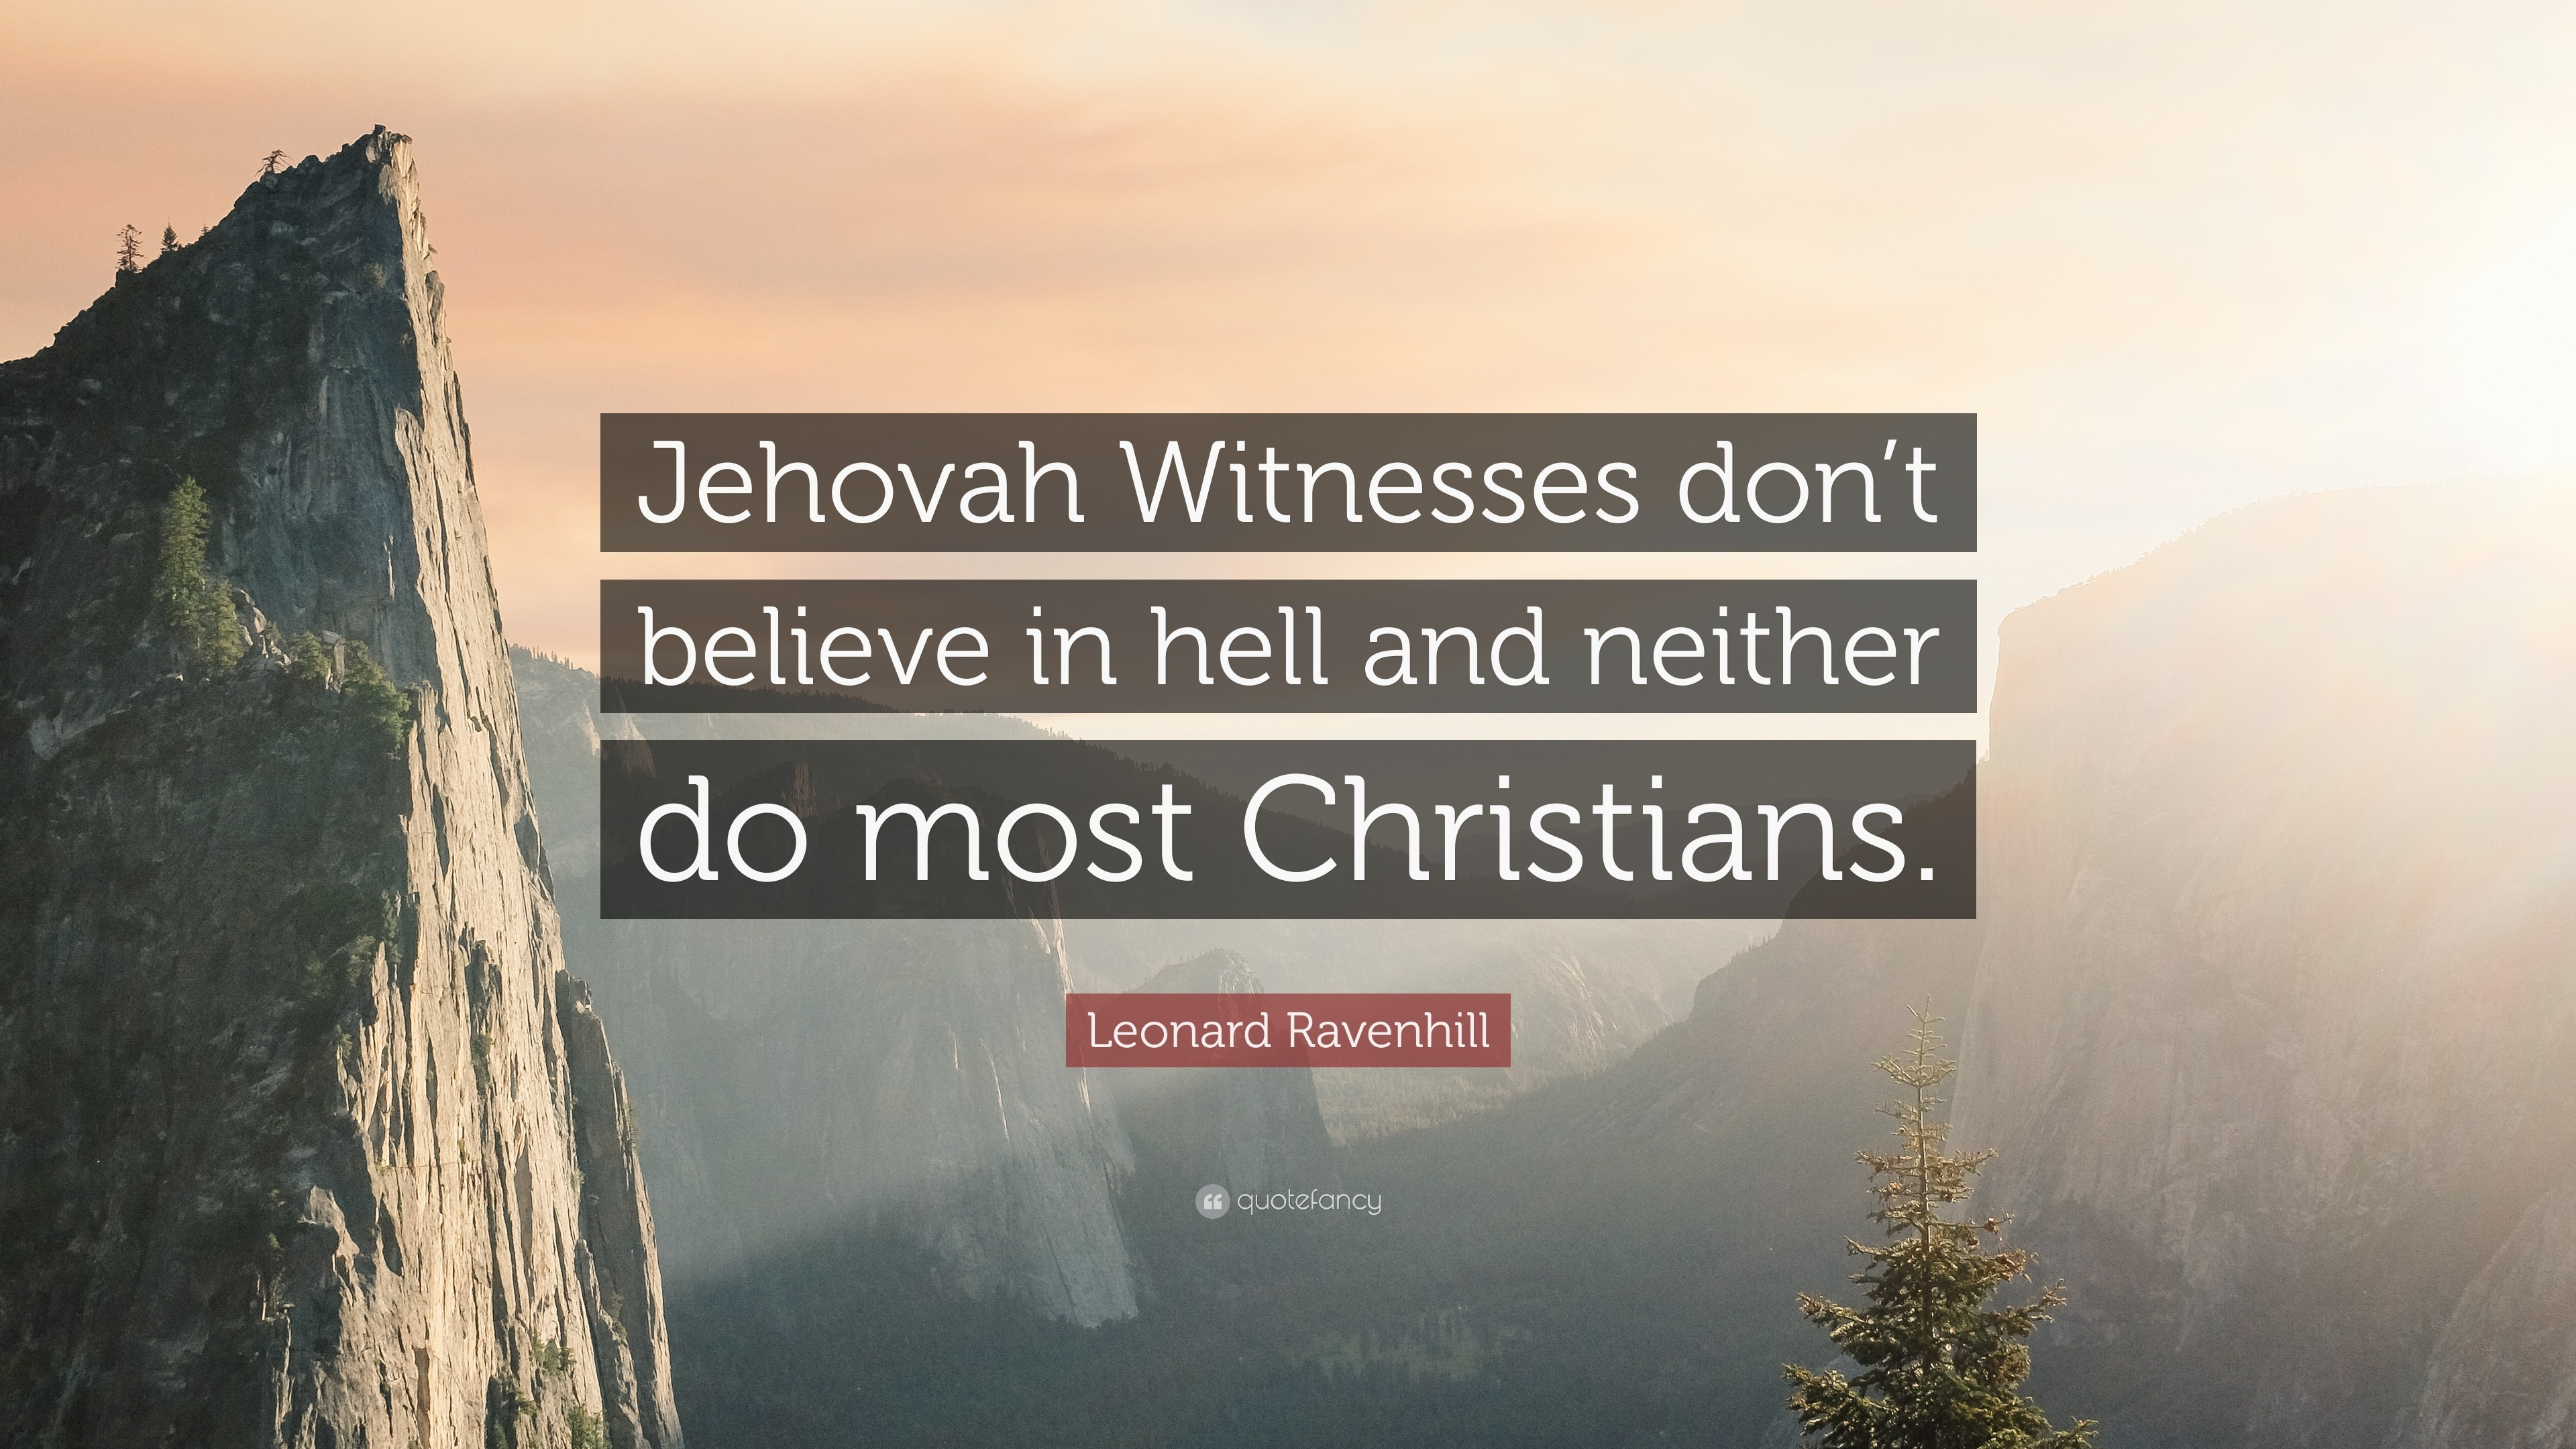 Jehovahs Witnesses Wallpaper 69 images 3840x2160